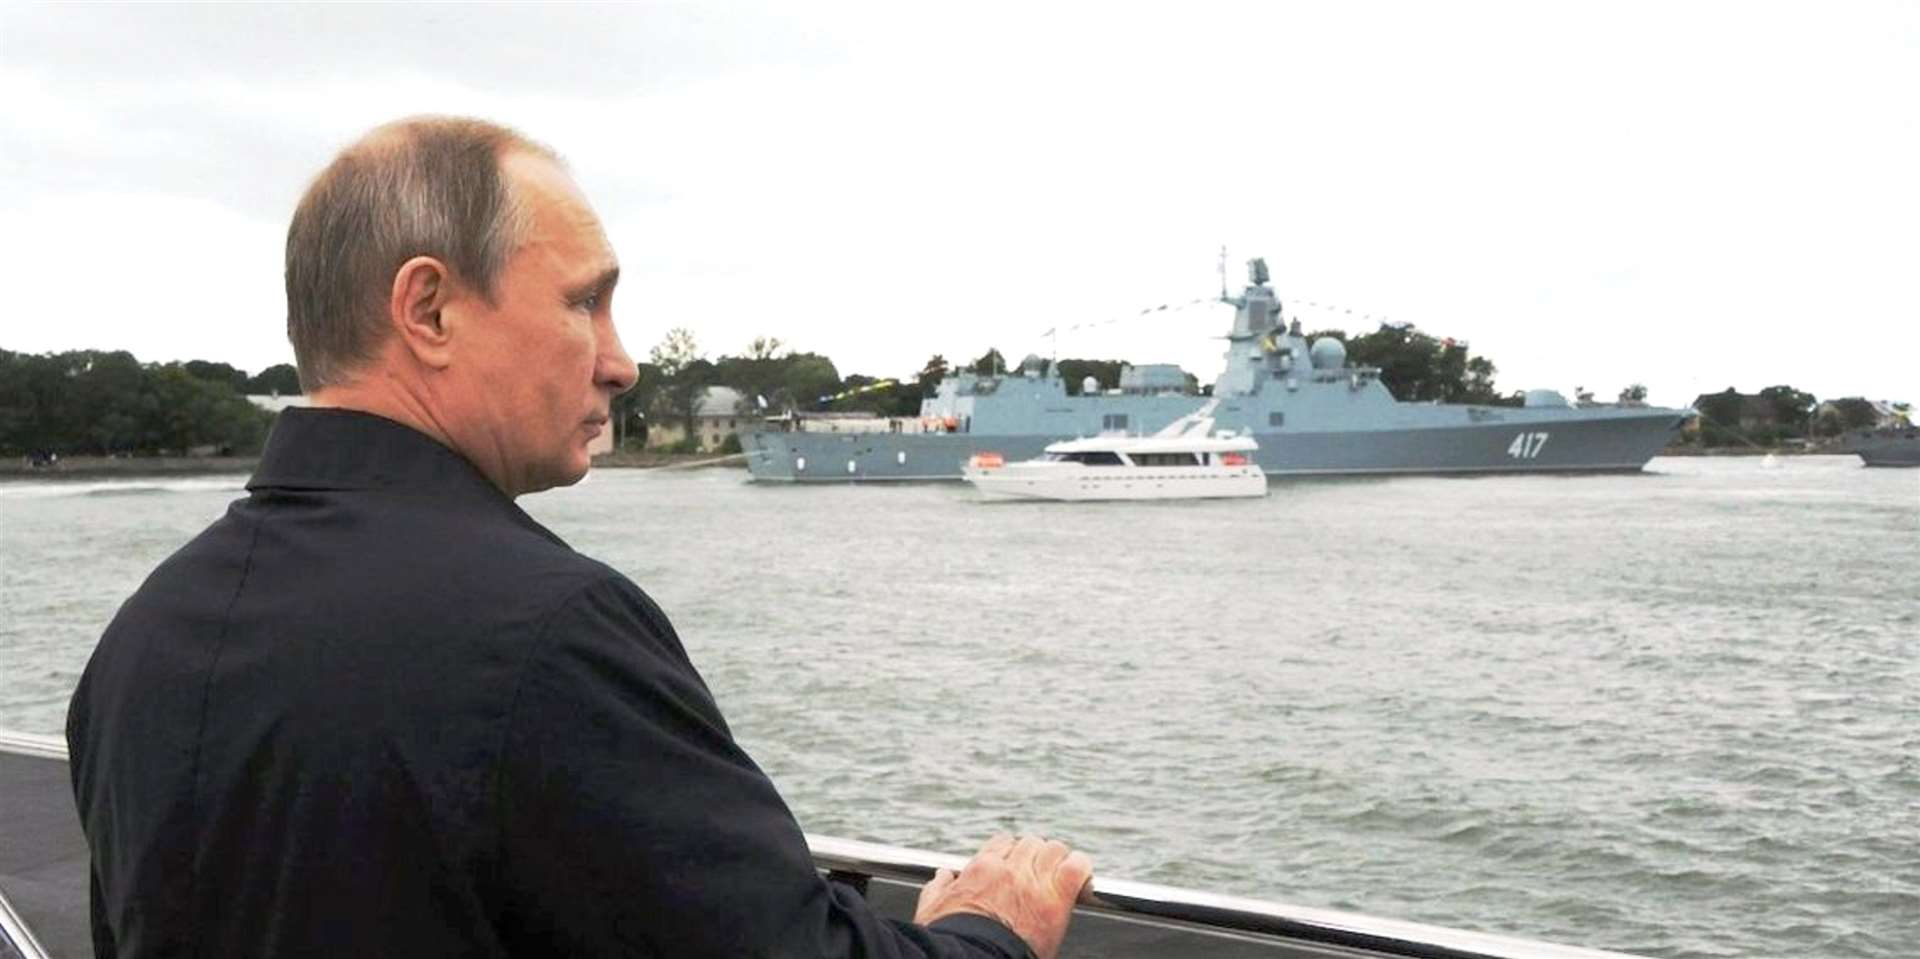 Vladimir Putin inspects The Gorshkov, which was seen off the Caithness coast last week.